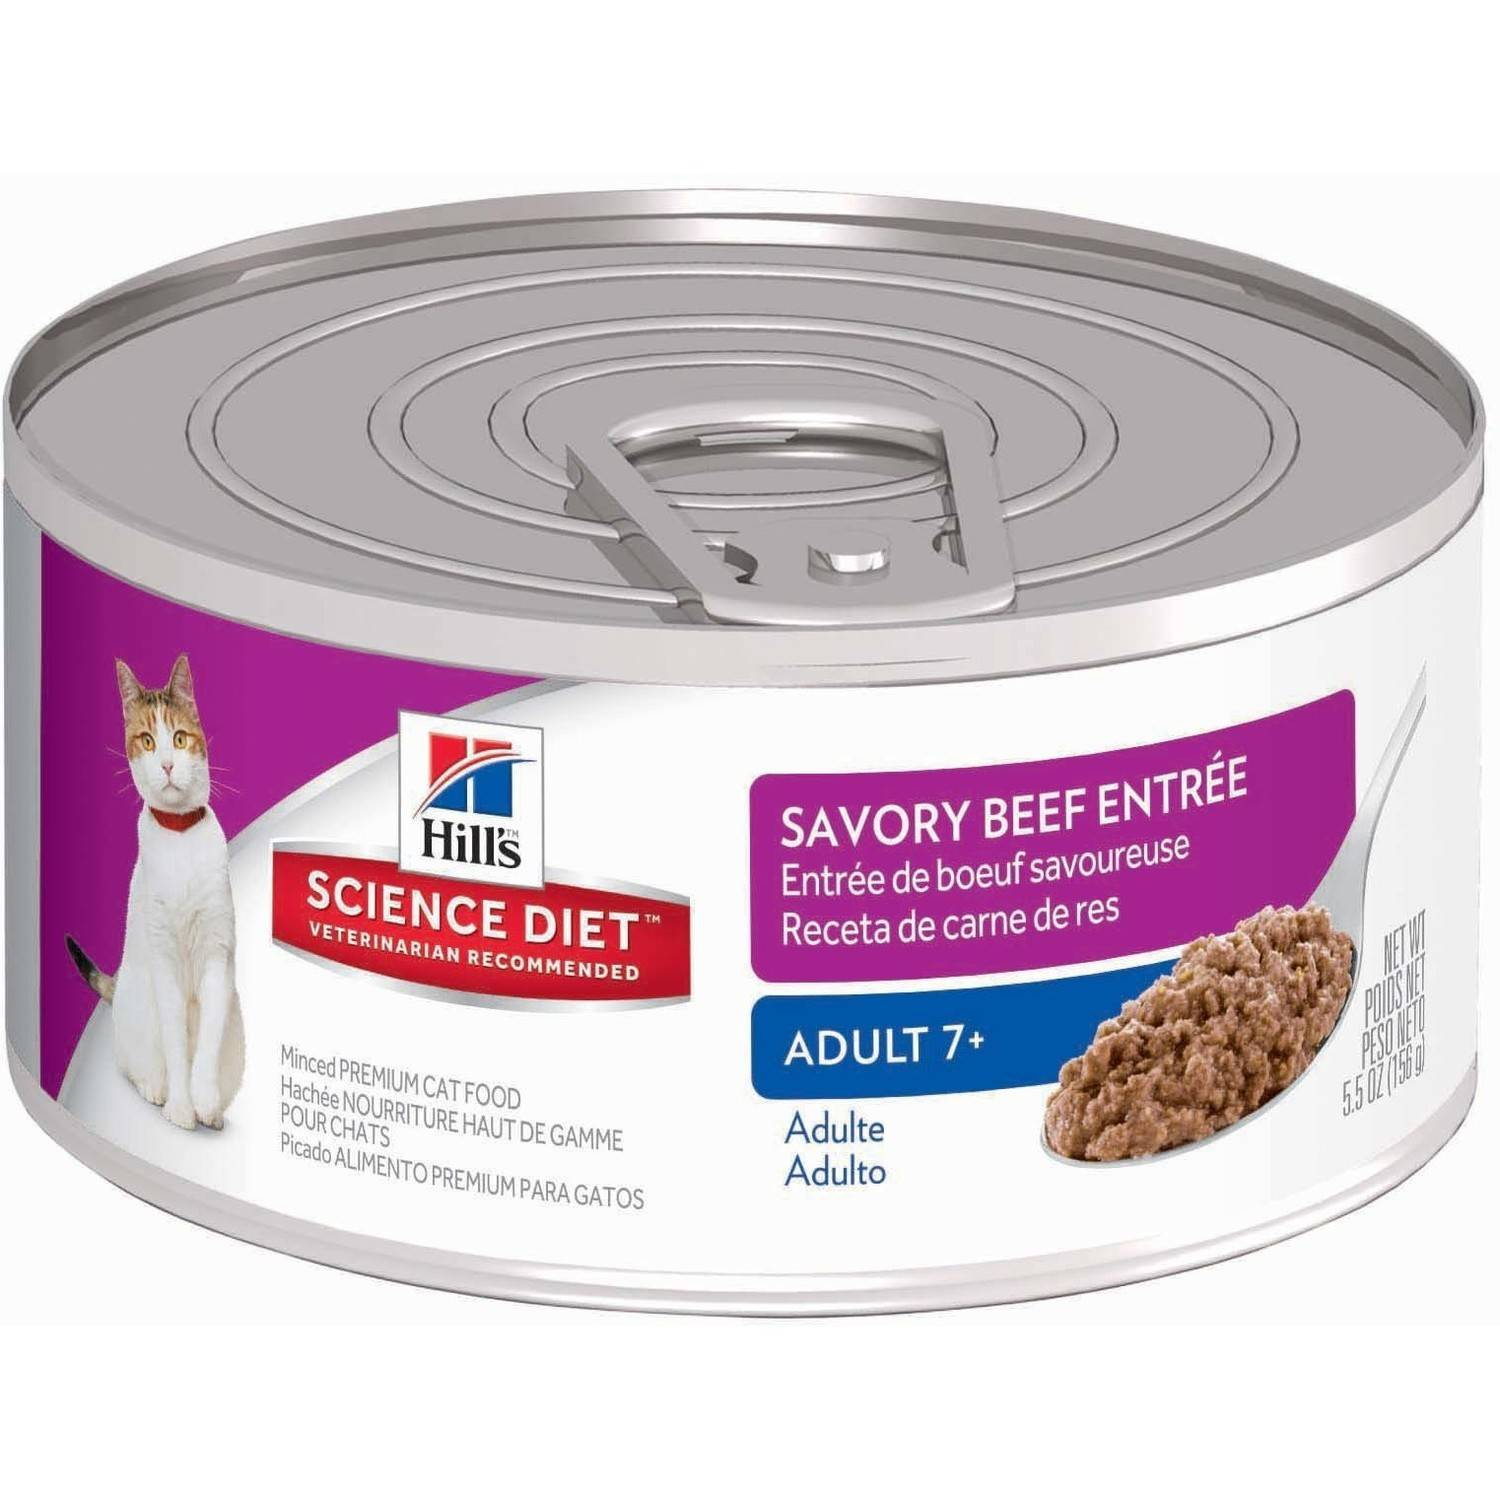 Hill's Science Diet (Get $5 back for every $20 spent) Adult 7+ Savory Beef Entrée Canned Cat Food, 5.5 oz, 24-pack